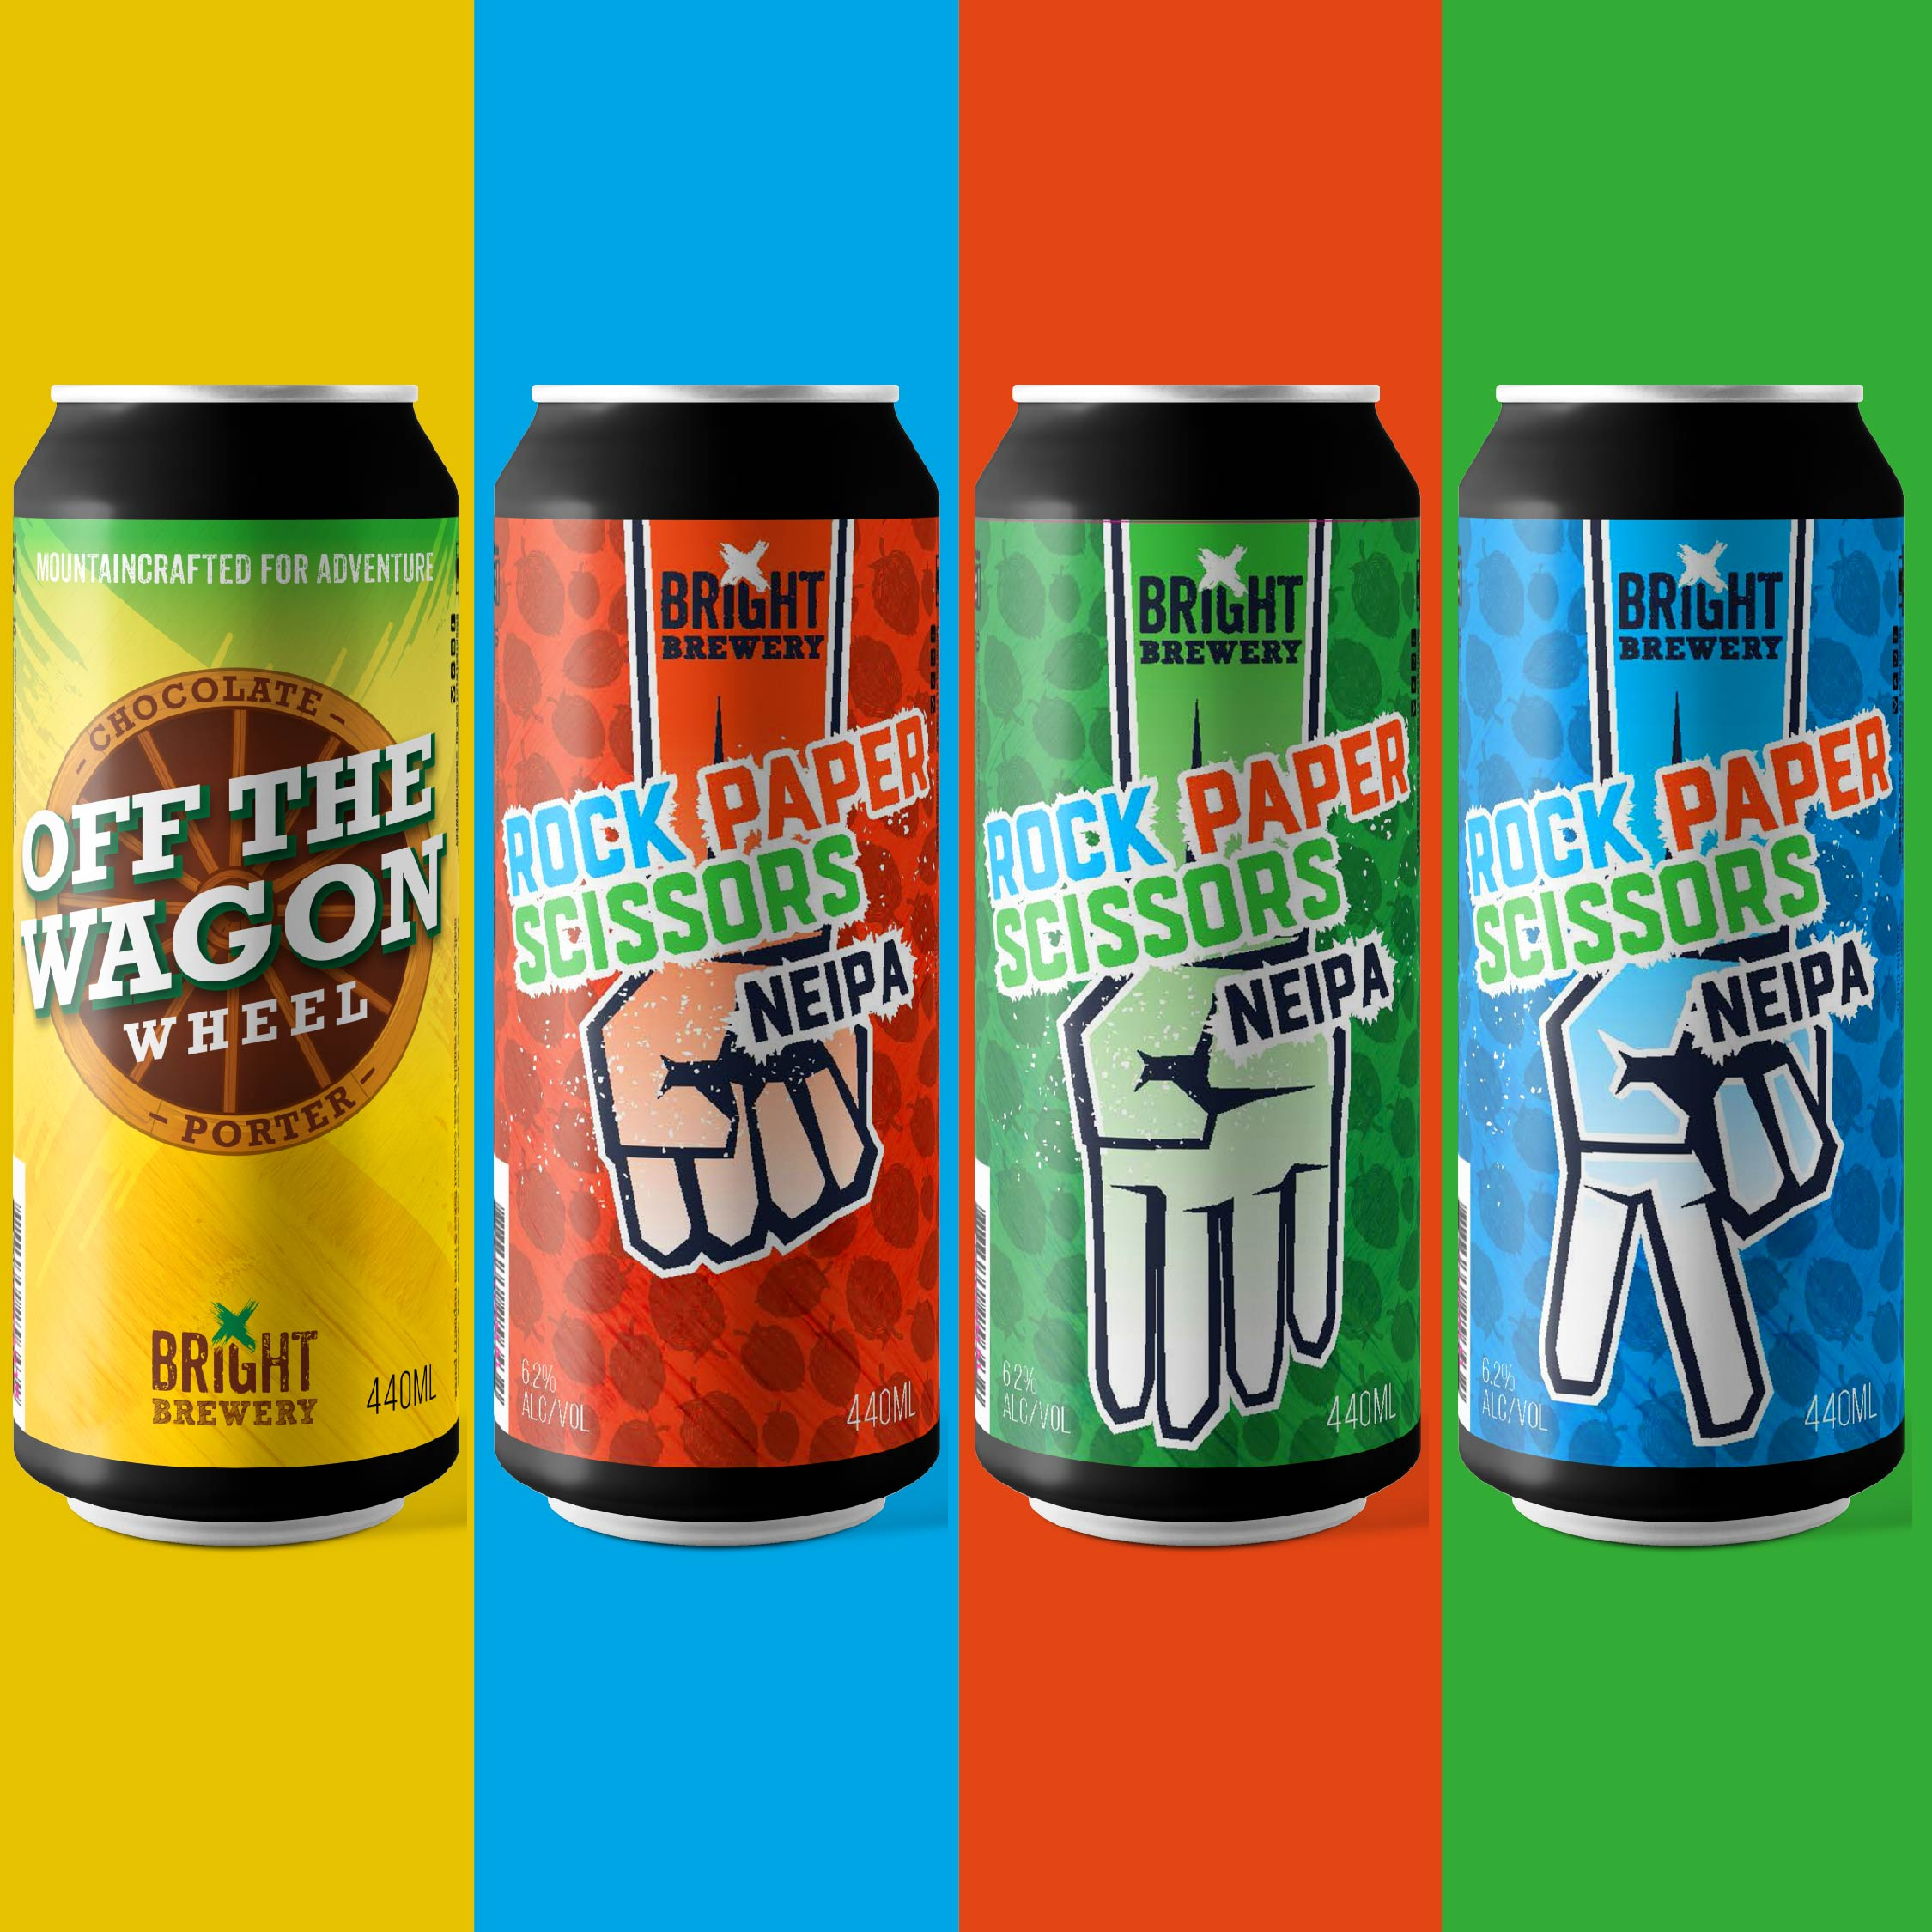 Win Bright's Big Cans